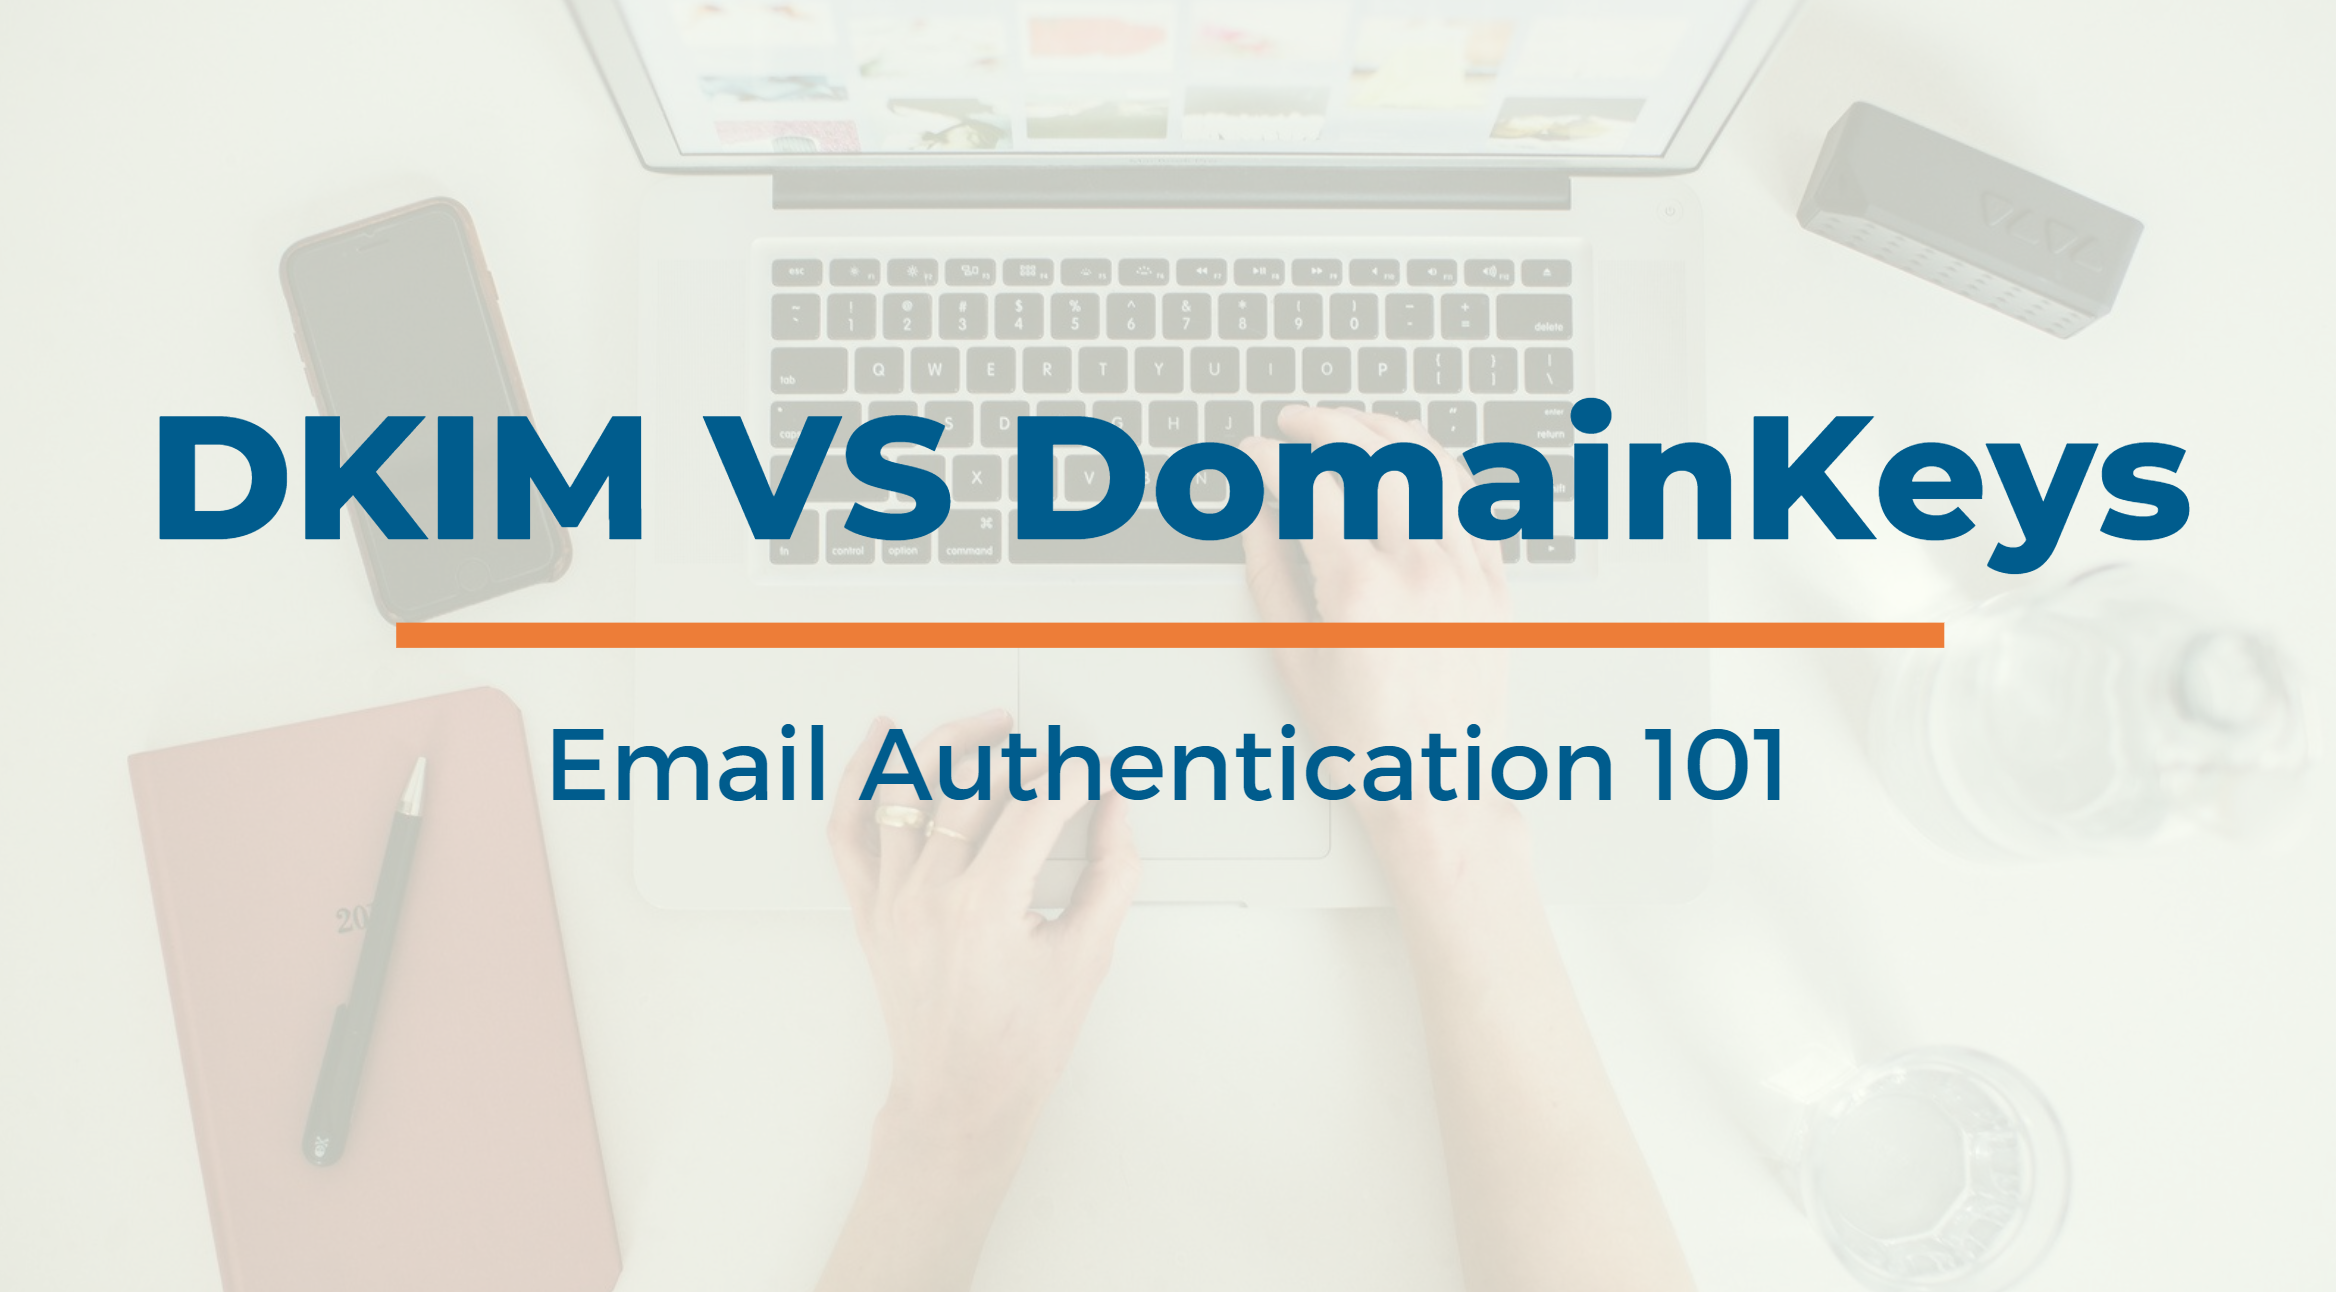 dkim vs domainkeys